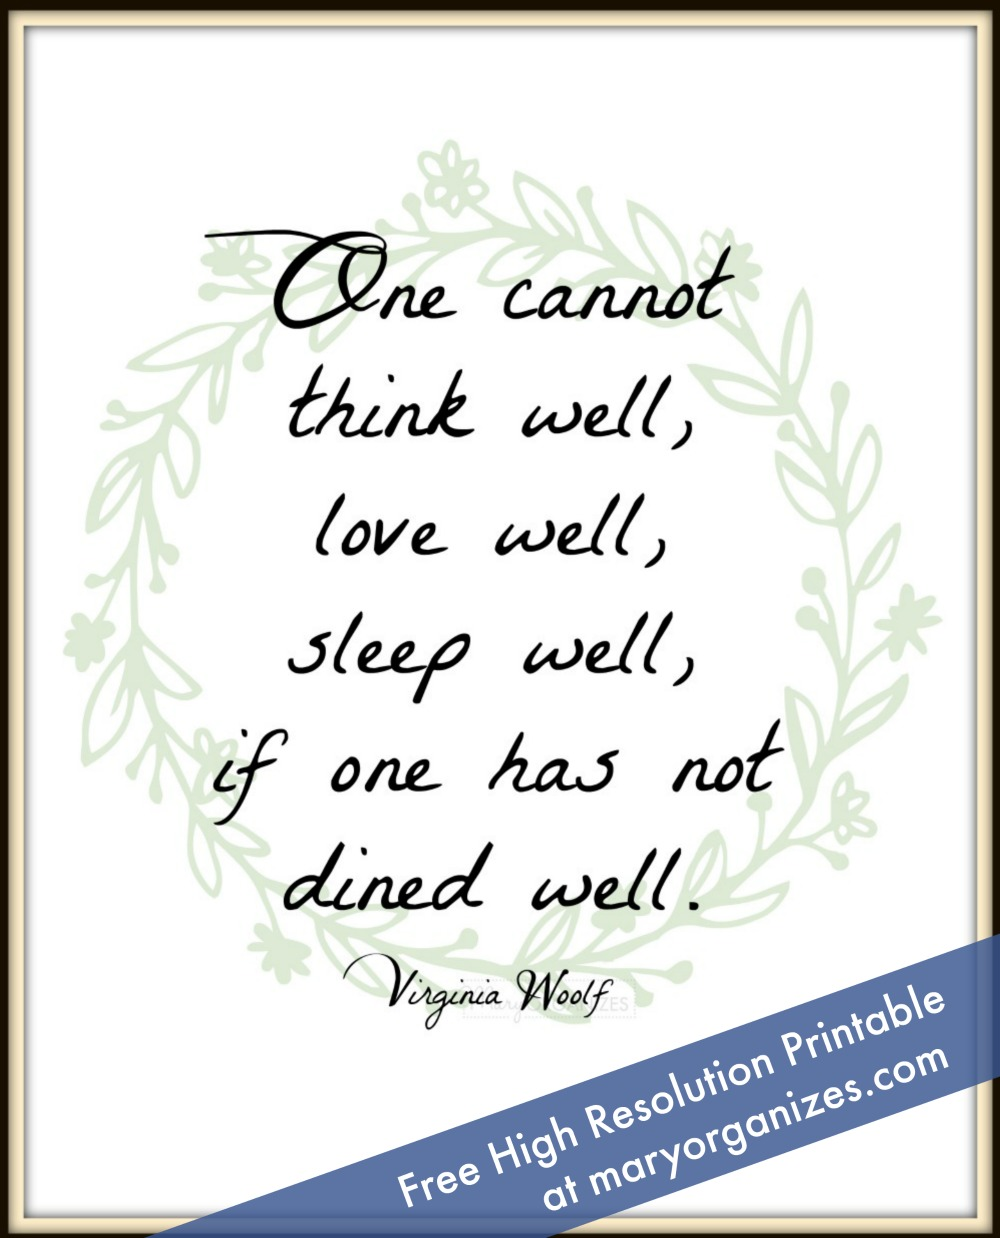 dined-well-free-printable